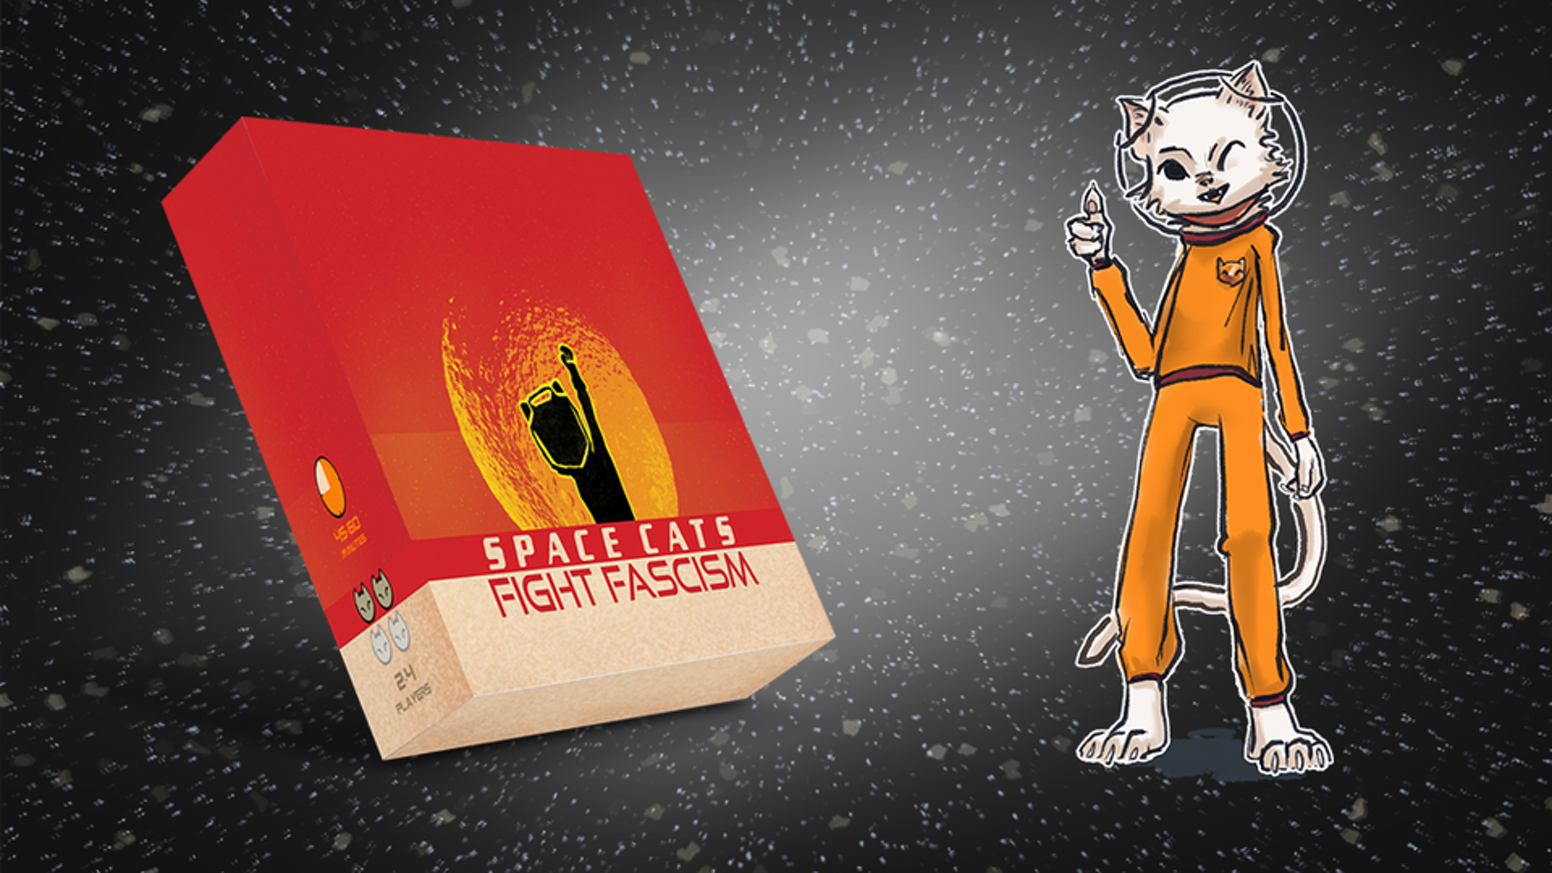 Play as a band of rebel cats trying to stop fascists from seizing control of the galaxy in this cooperative board game!